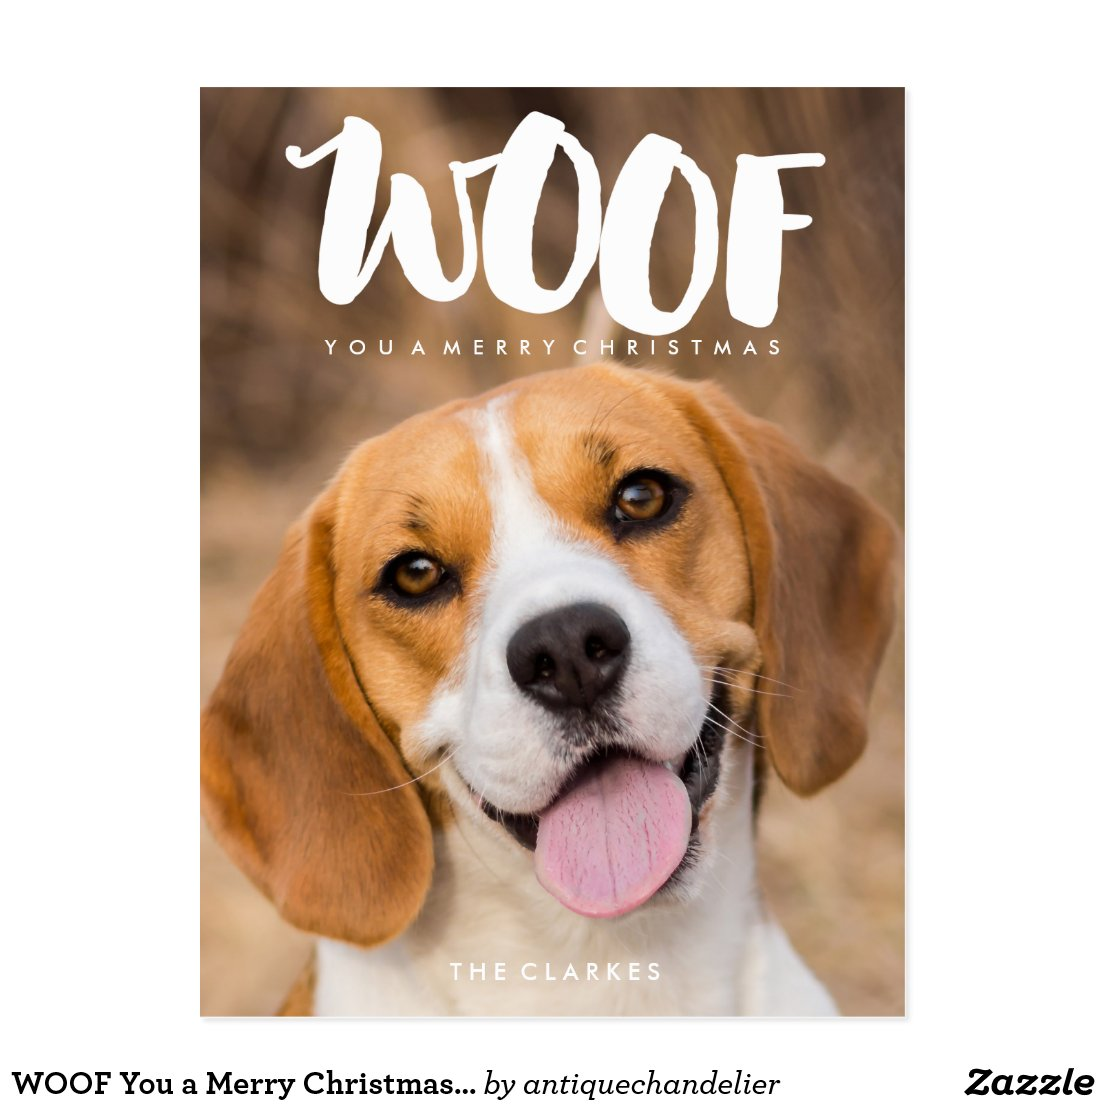 WOOF You a Merry Christmas | Dog Photo Postcard